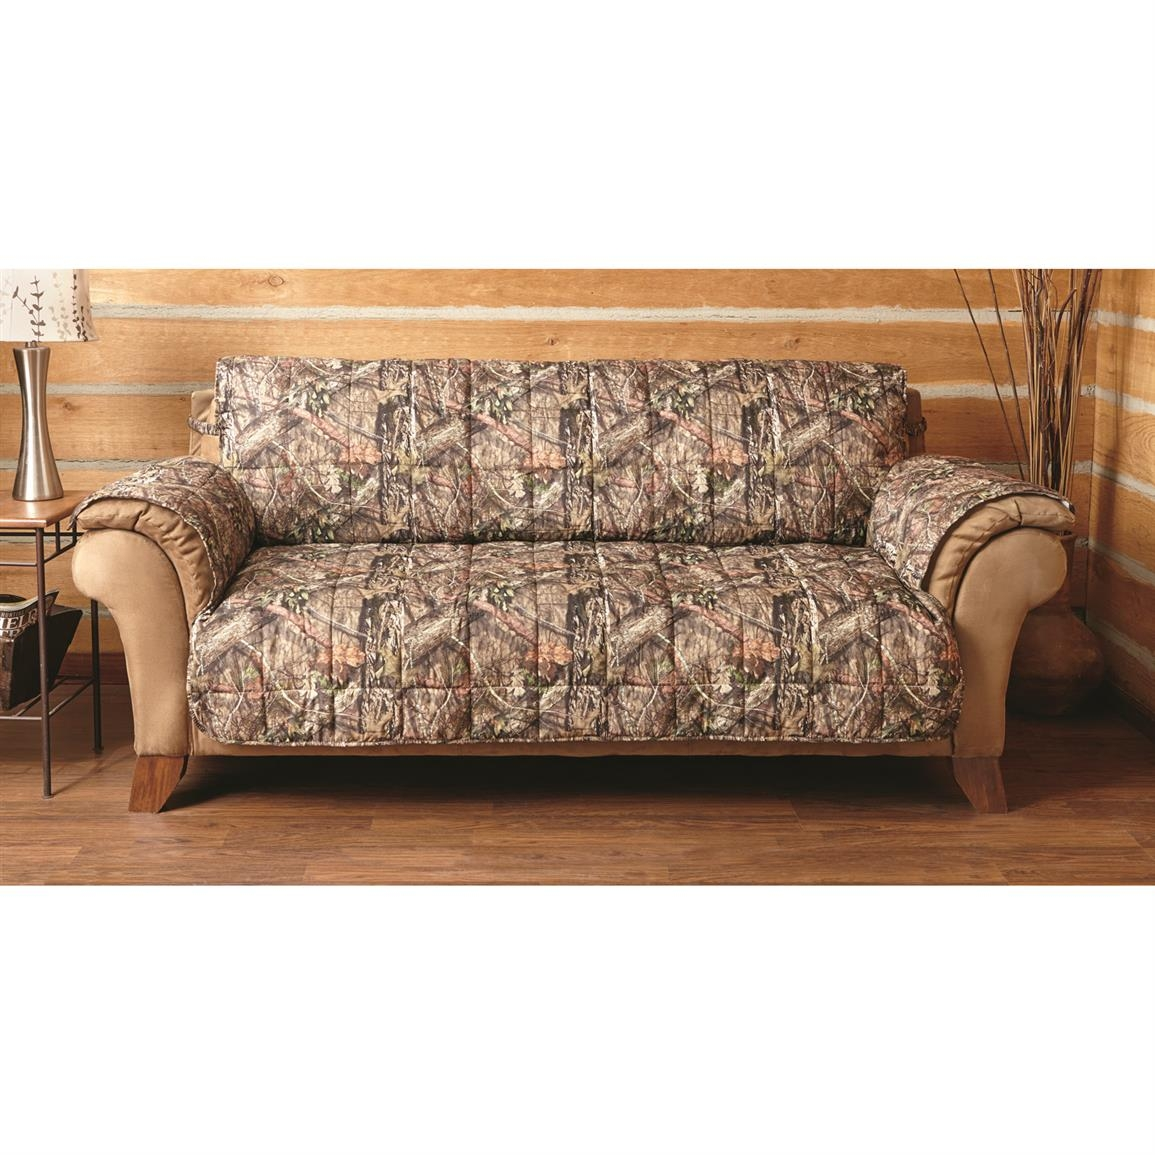 oak furniture sofa beds natuzzi reviews australia camo cover and uflage slipcover